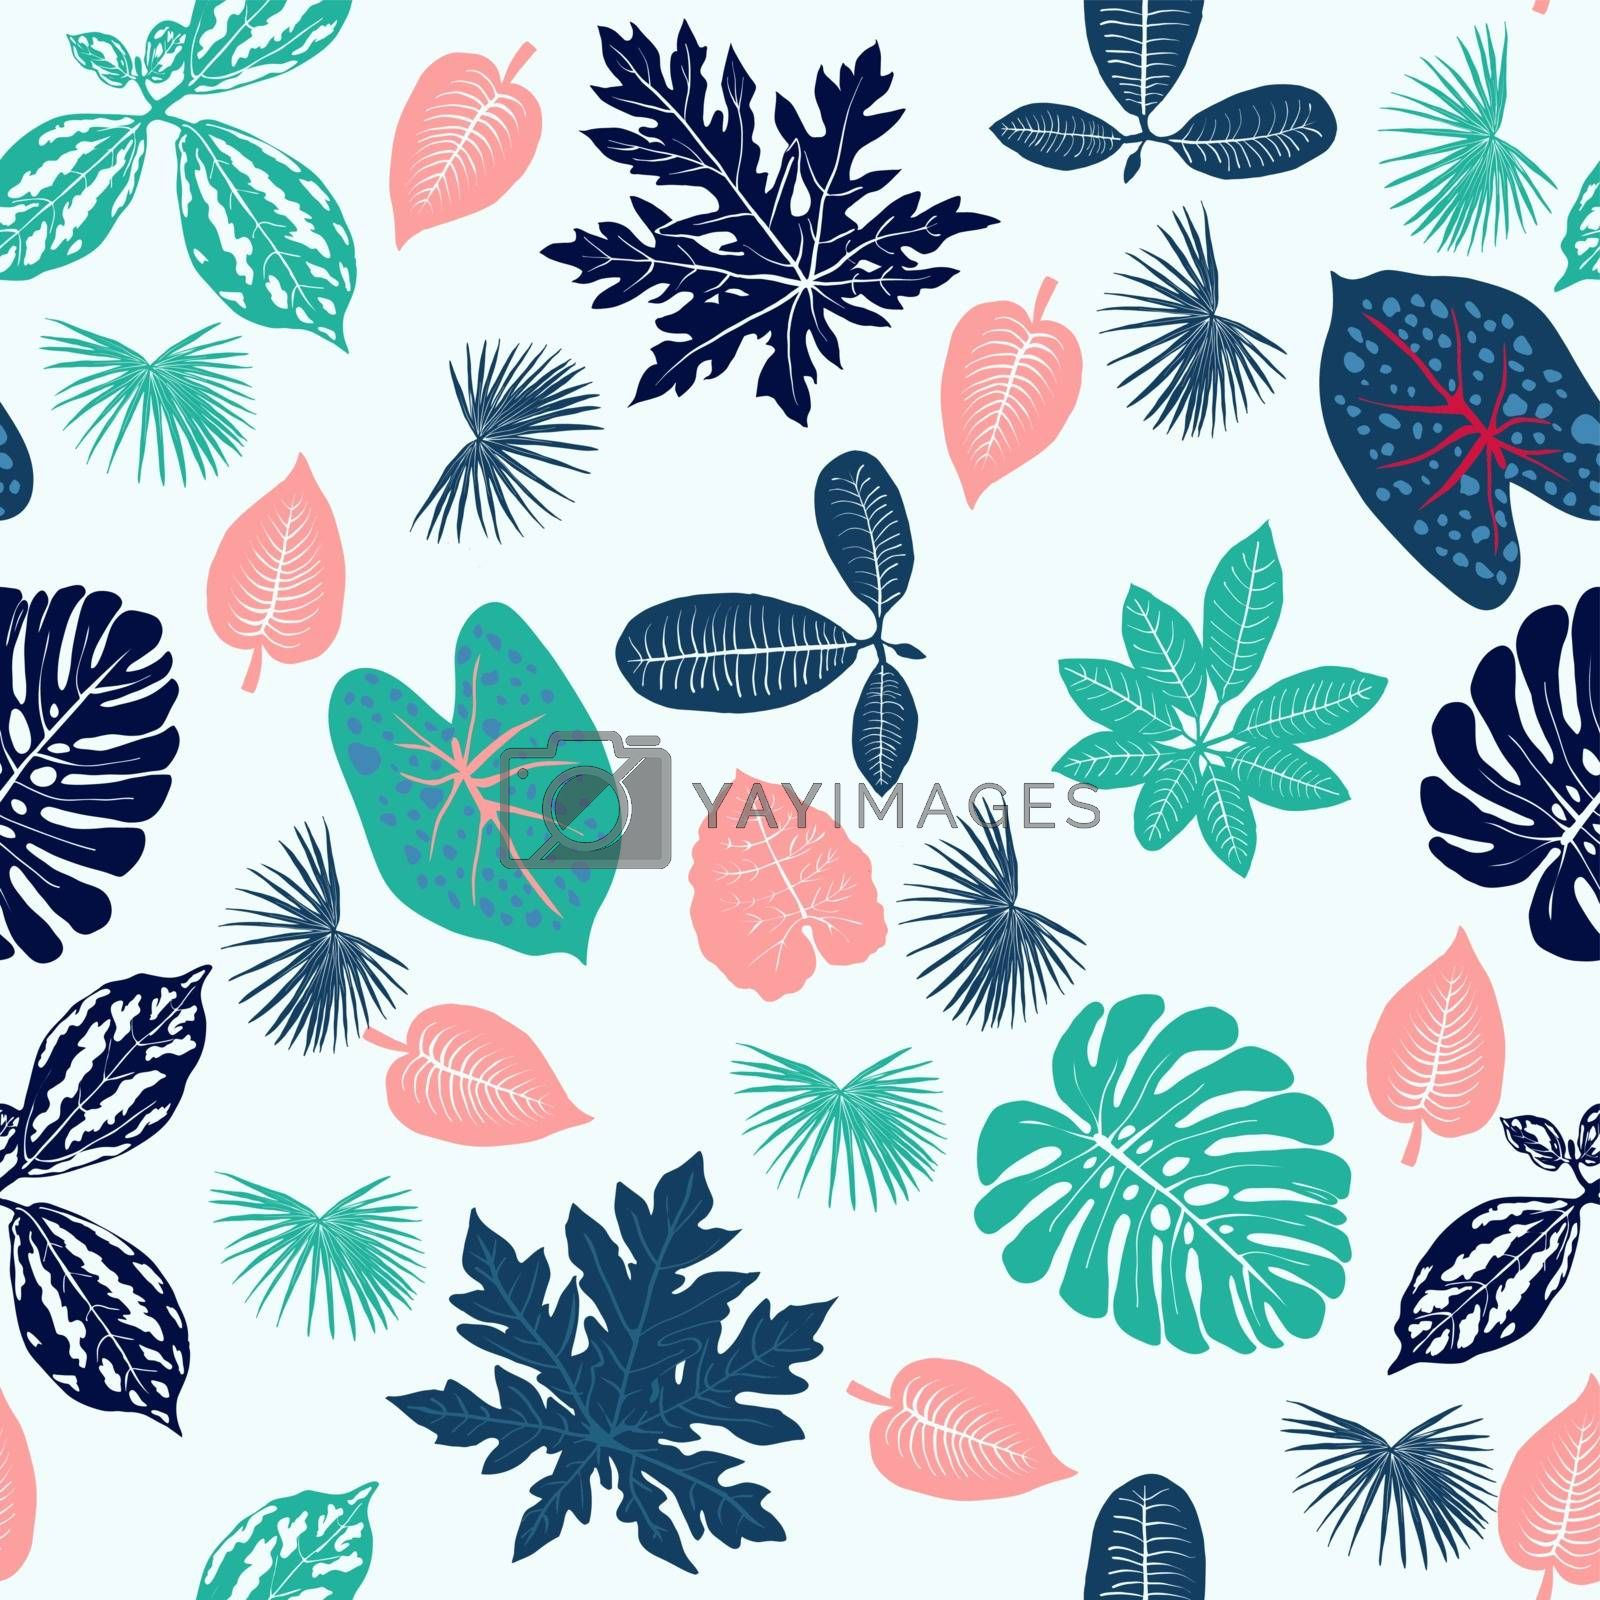 Vector Tropical plants leaves seamless pattern on white background.